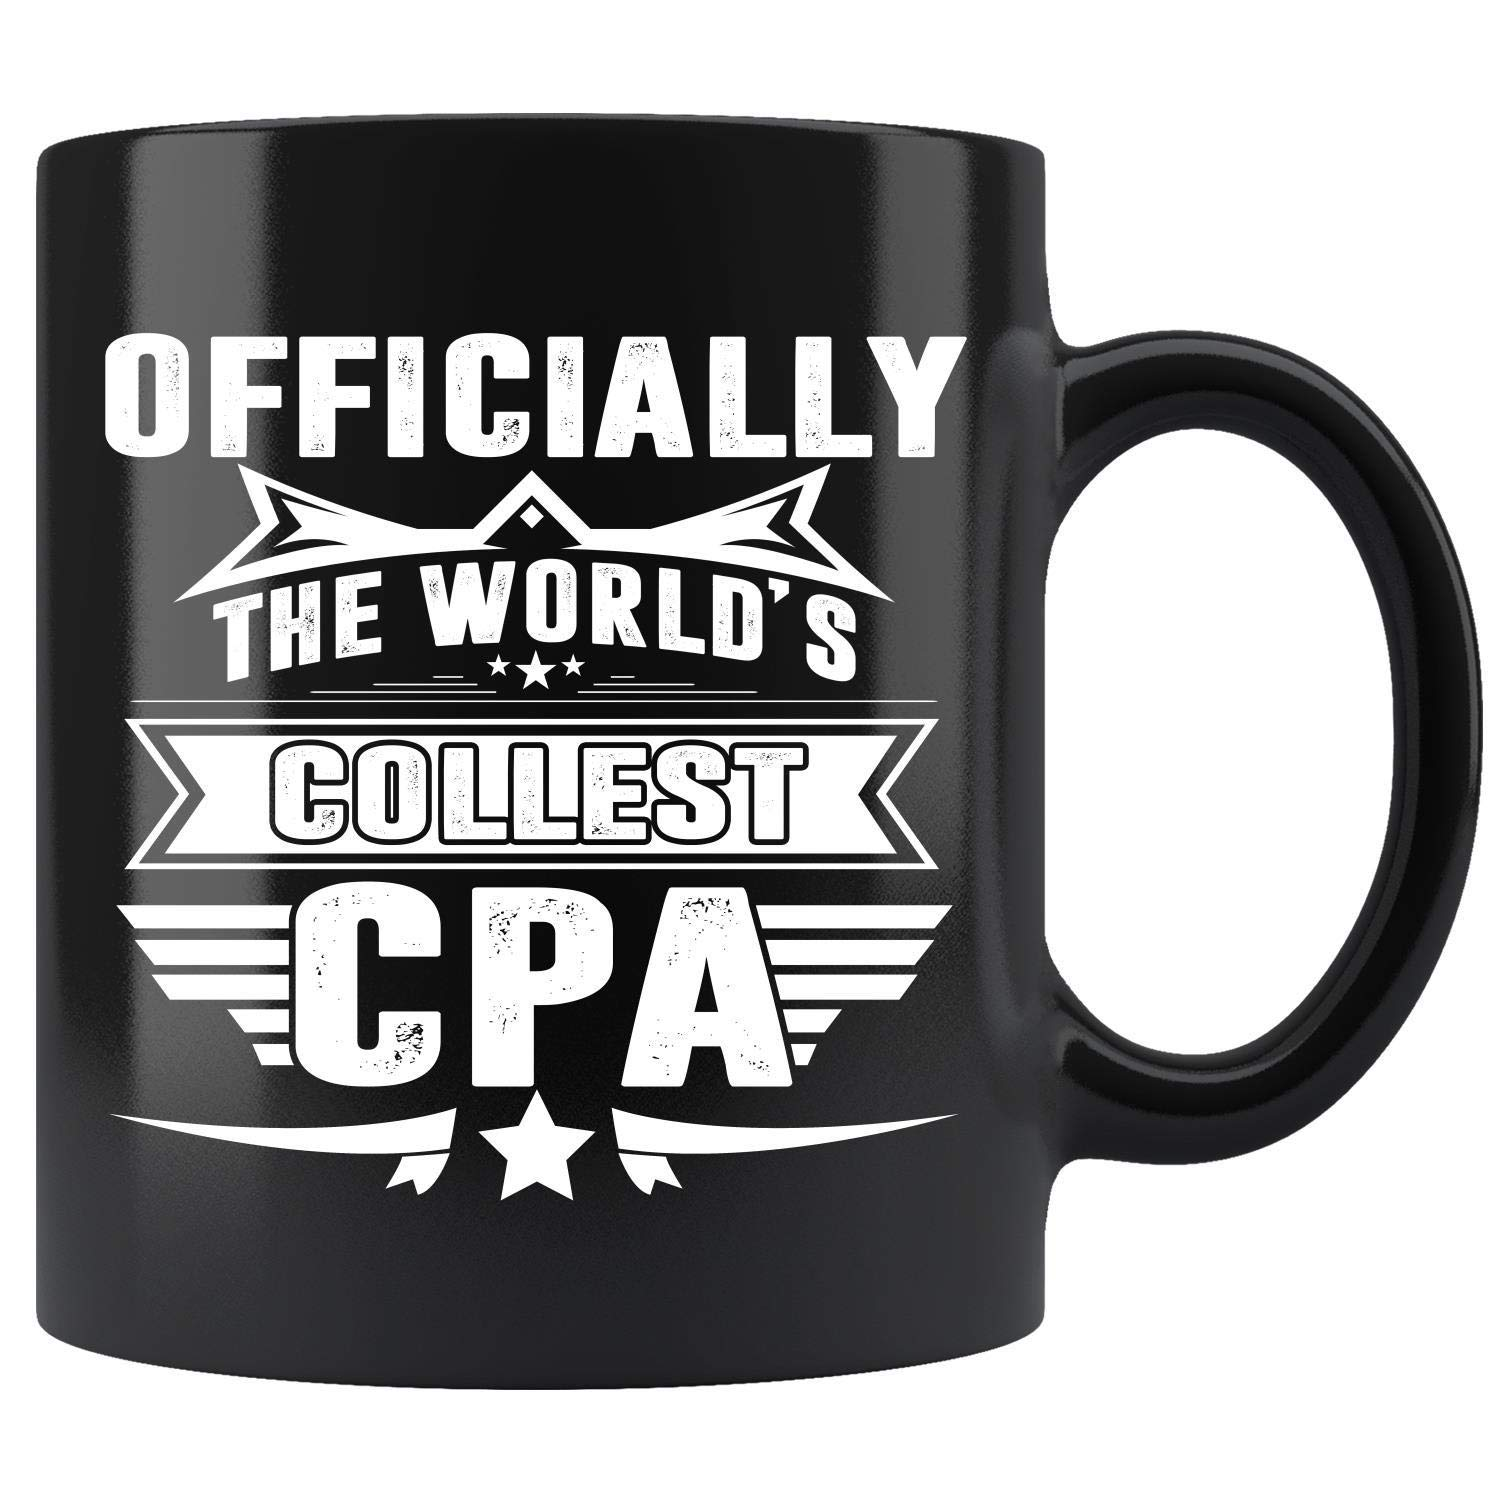 Amazon The Worlds Coolest Cpa Certified Public Accountants